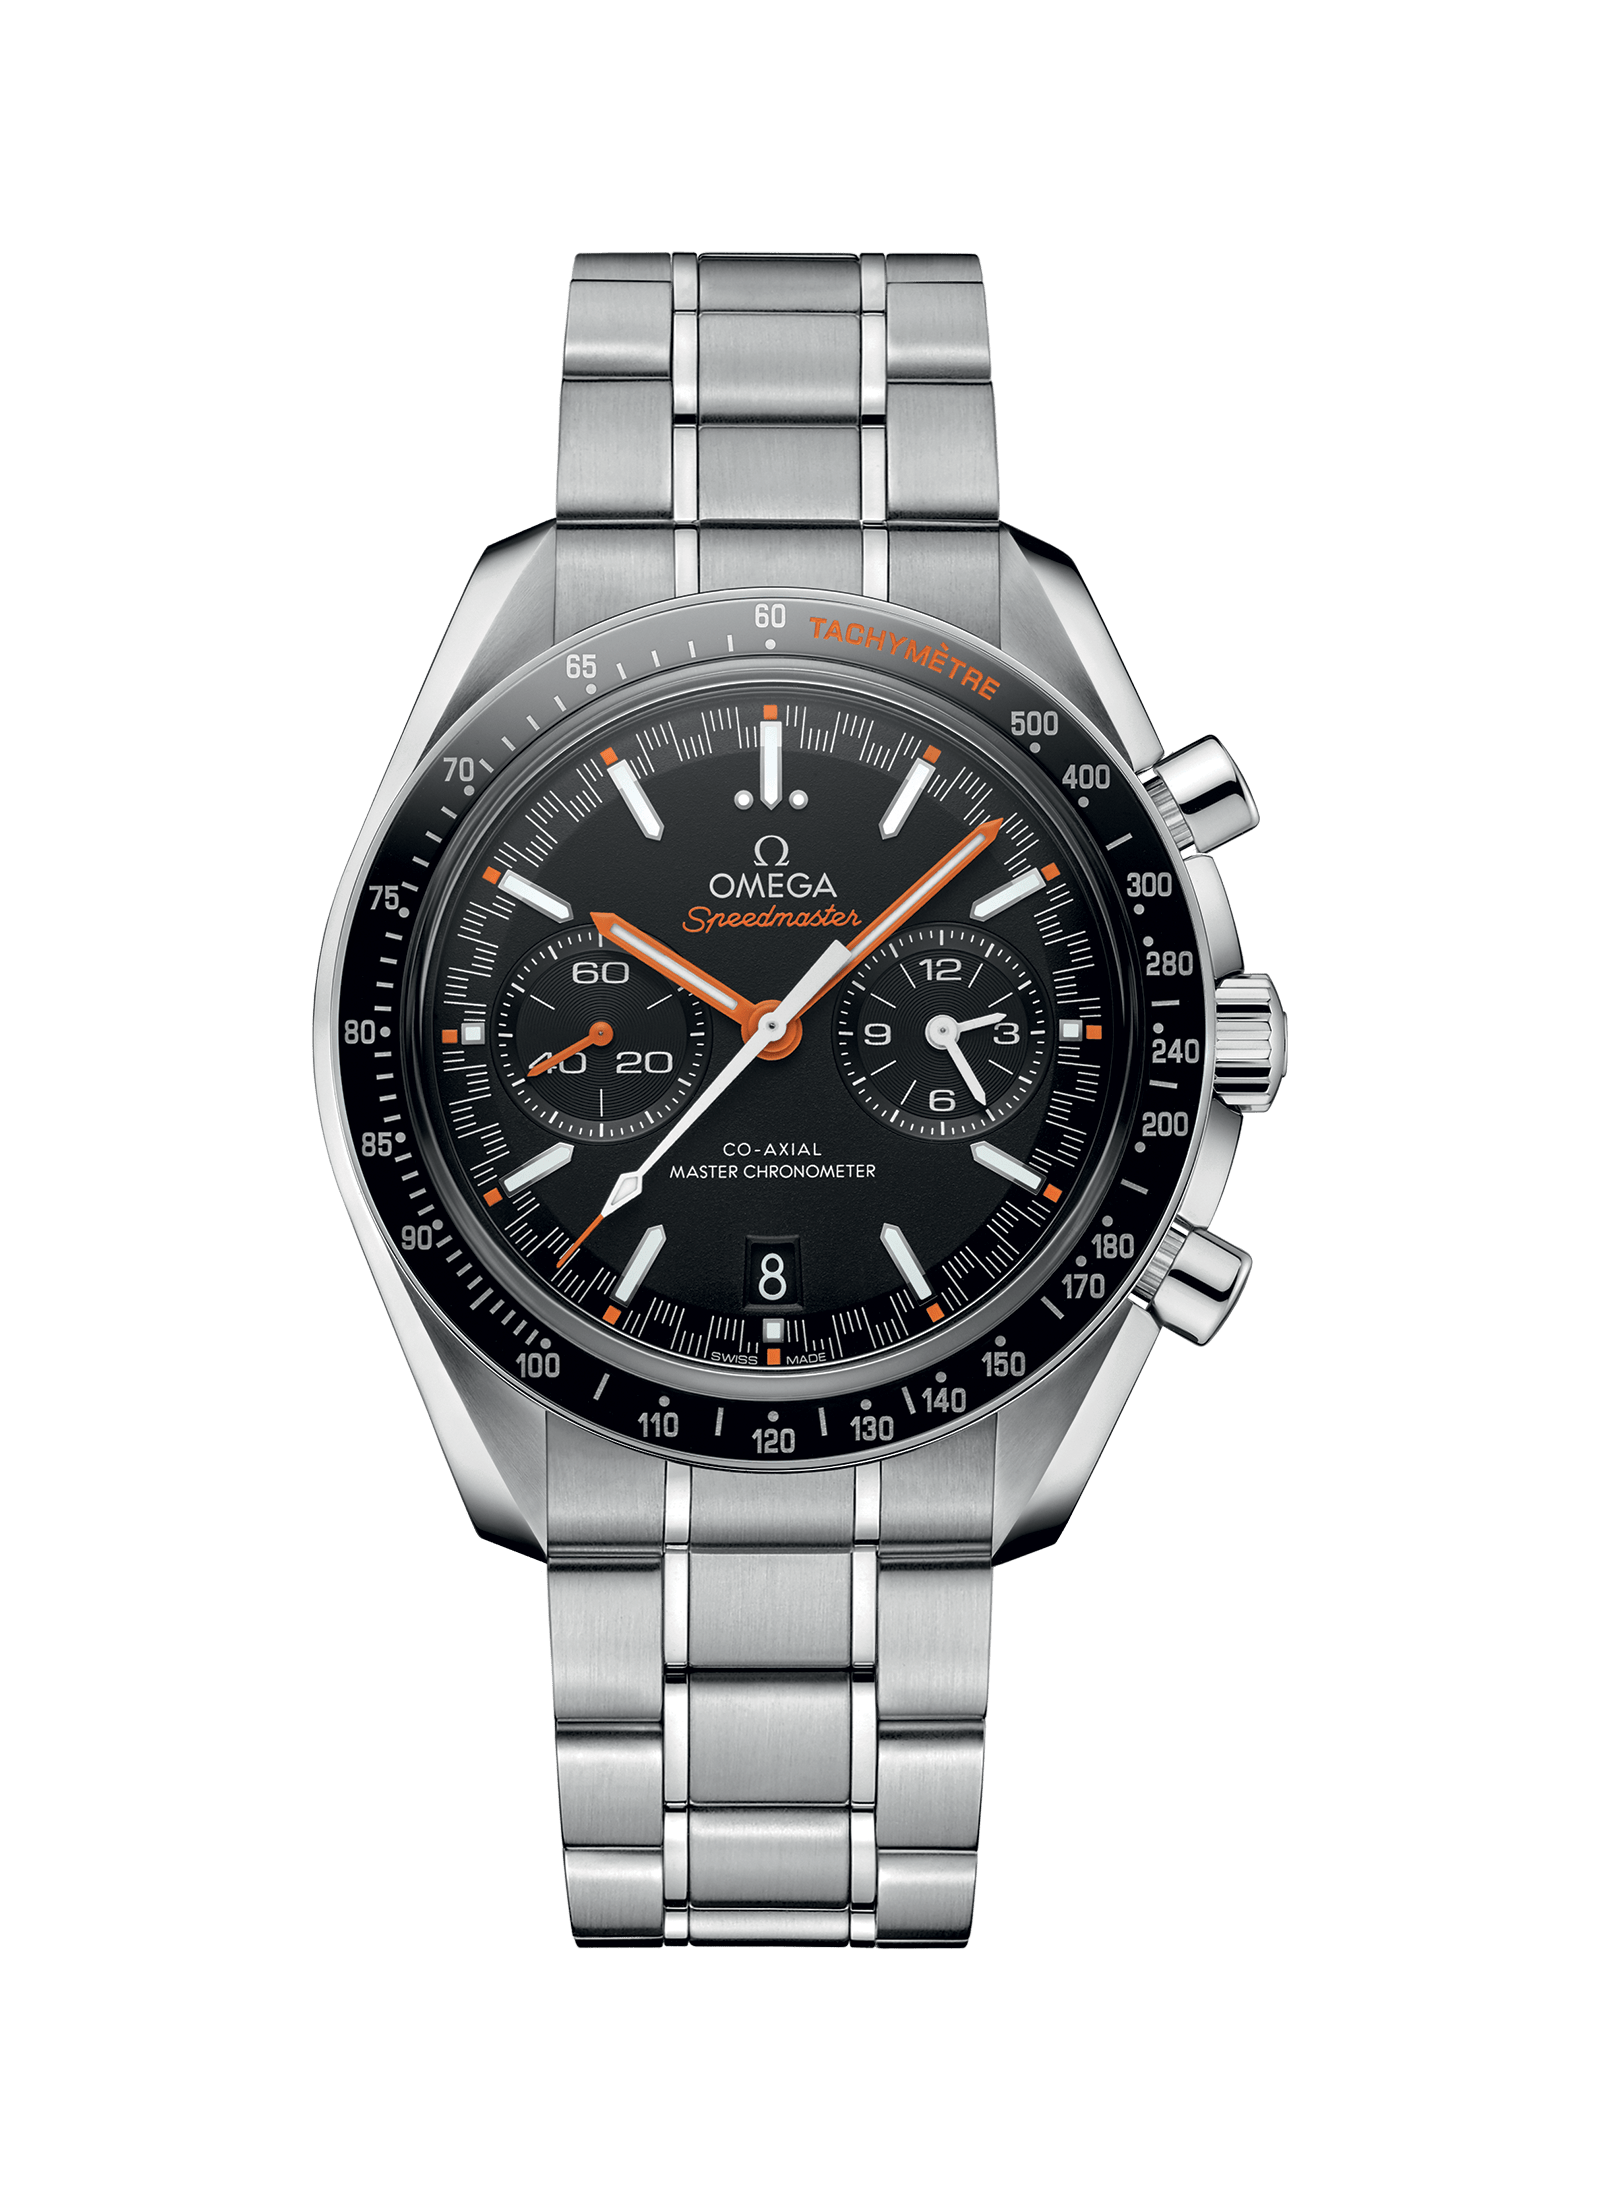 Omega Speedmaster Racing Co-Axial c9900 44,25mm... vale o que custa? Omega-speedmaster-racing-omega-co-axial-master-chronometer-chronograph-44-25-mm-32930445101002-1-product-zoom